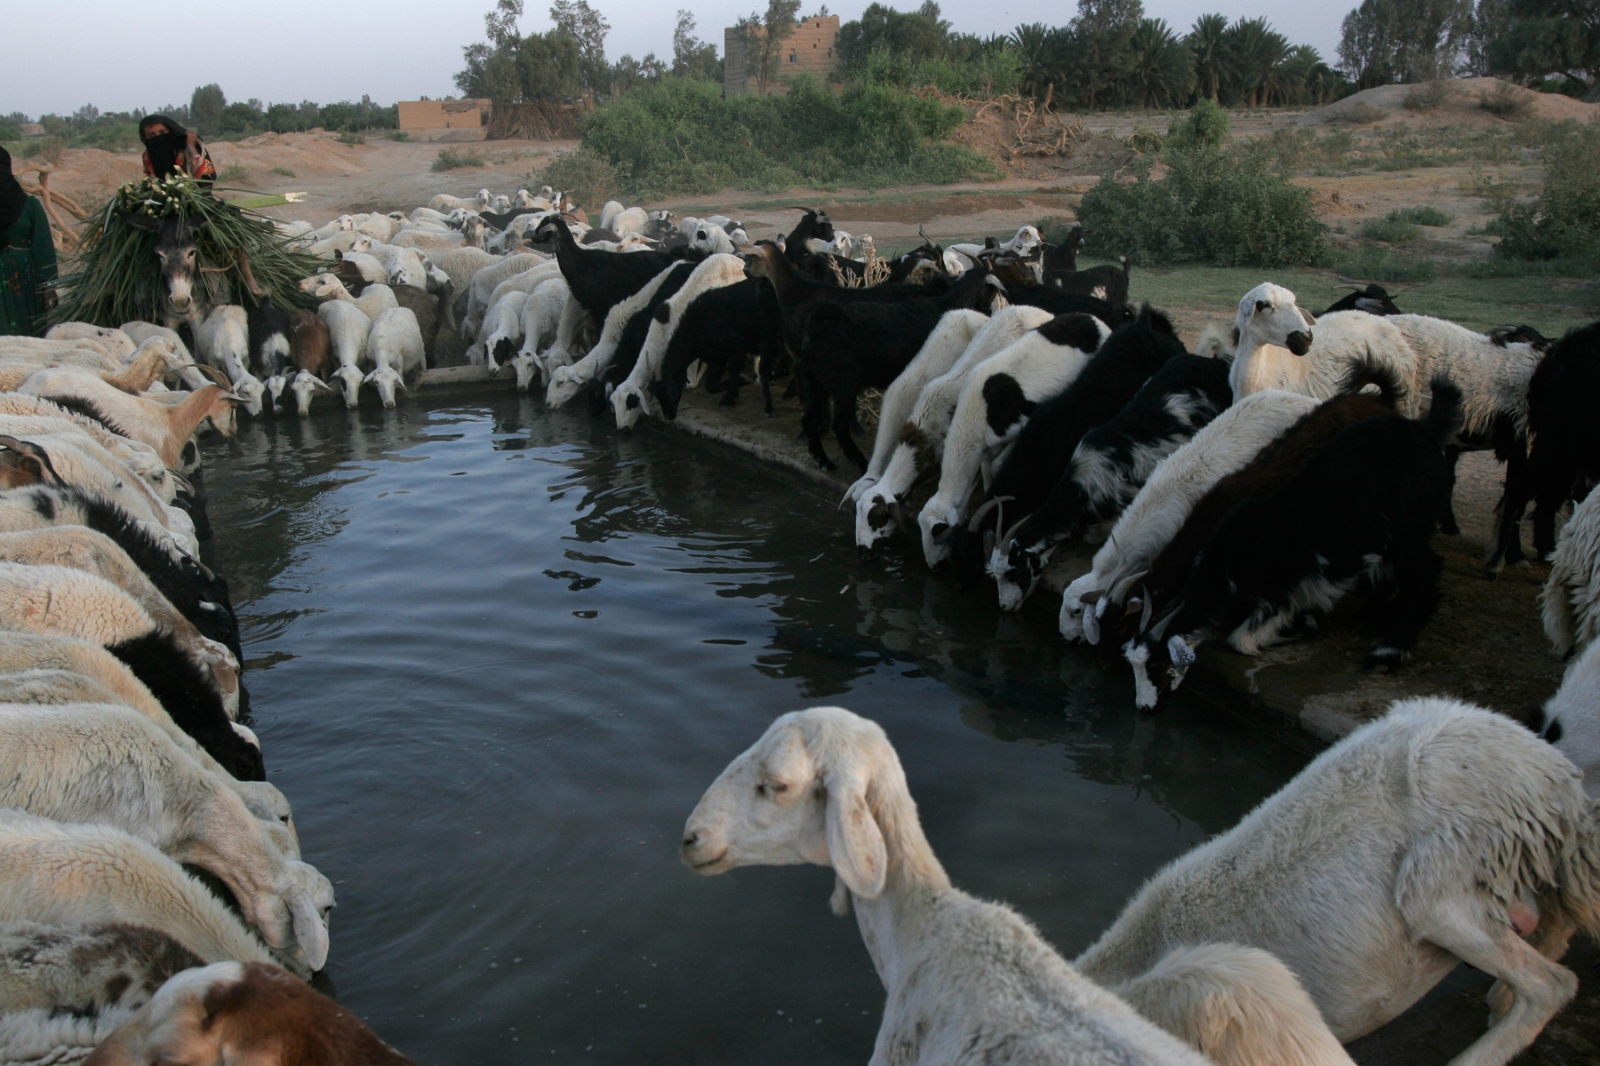 Sheep take advantage of a stop at a water hole in al-Jawf where water is very precious.